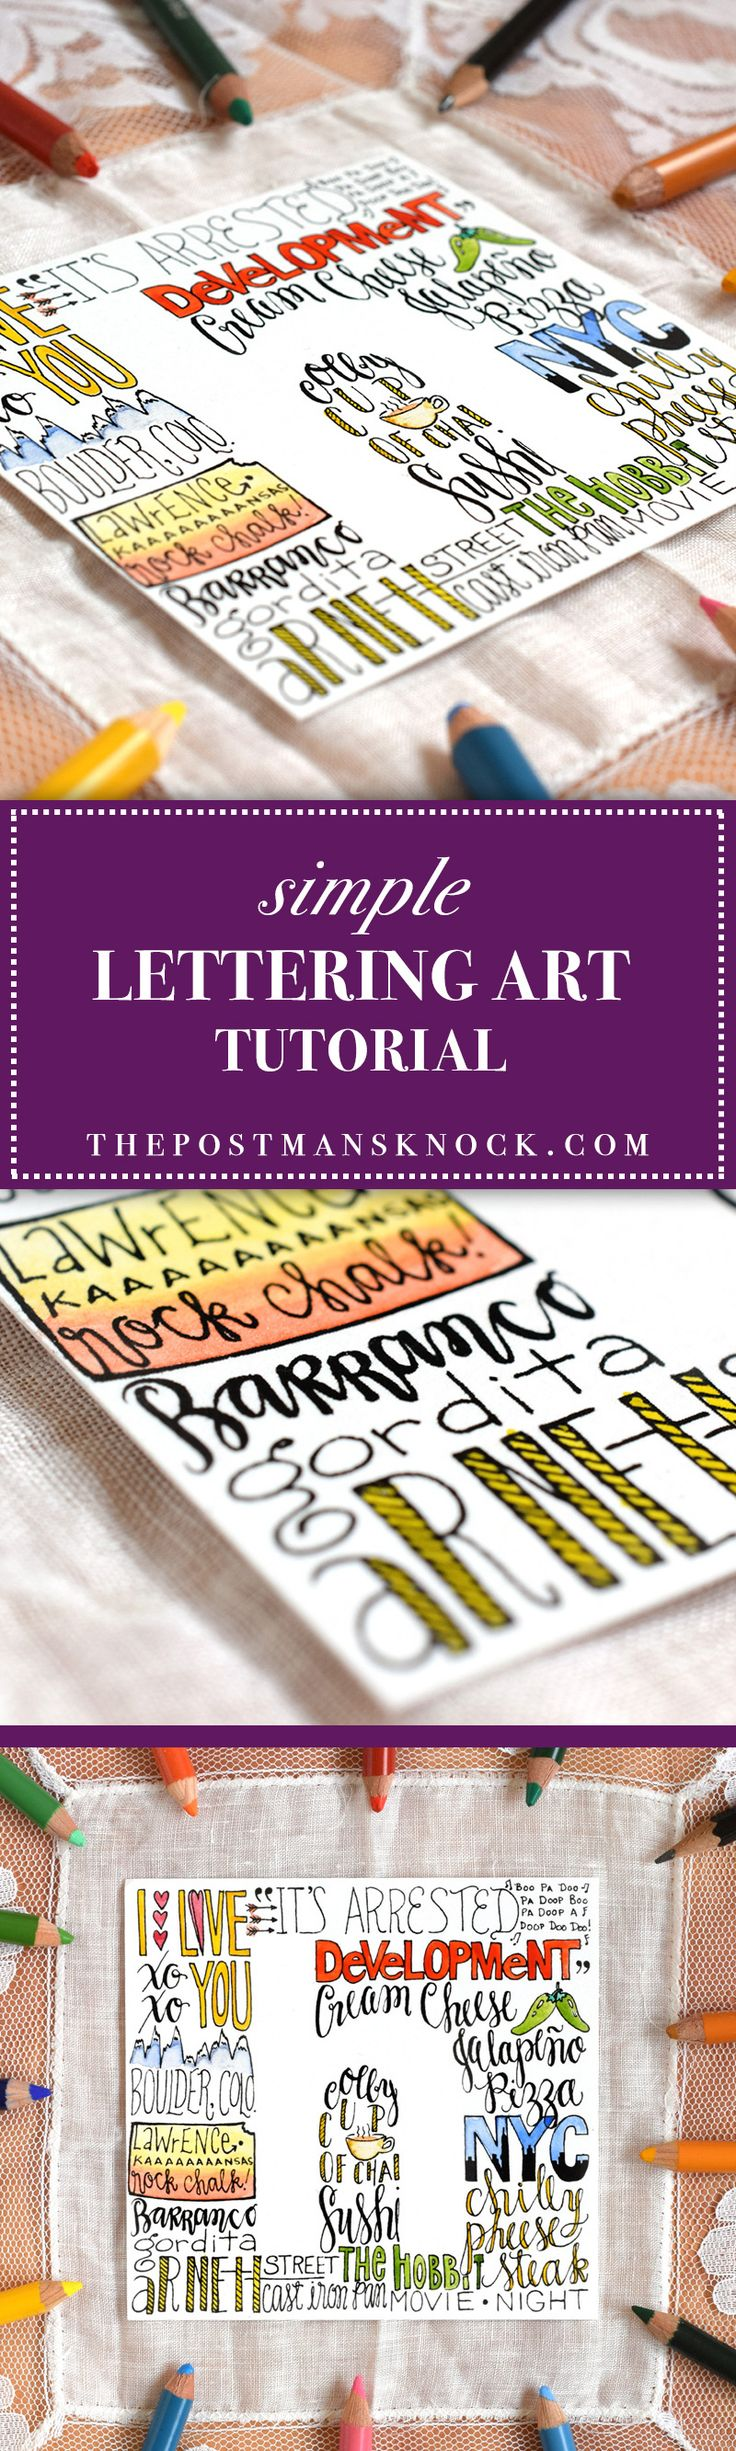 Quick tutorial to add personality to a DIY gift tag, mail art, stationery, or to make art for your home!